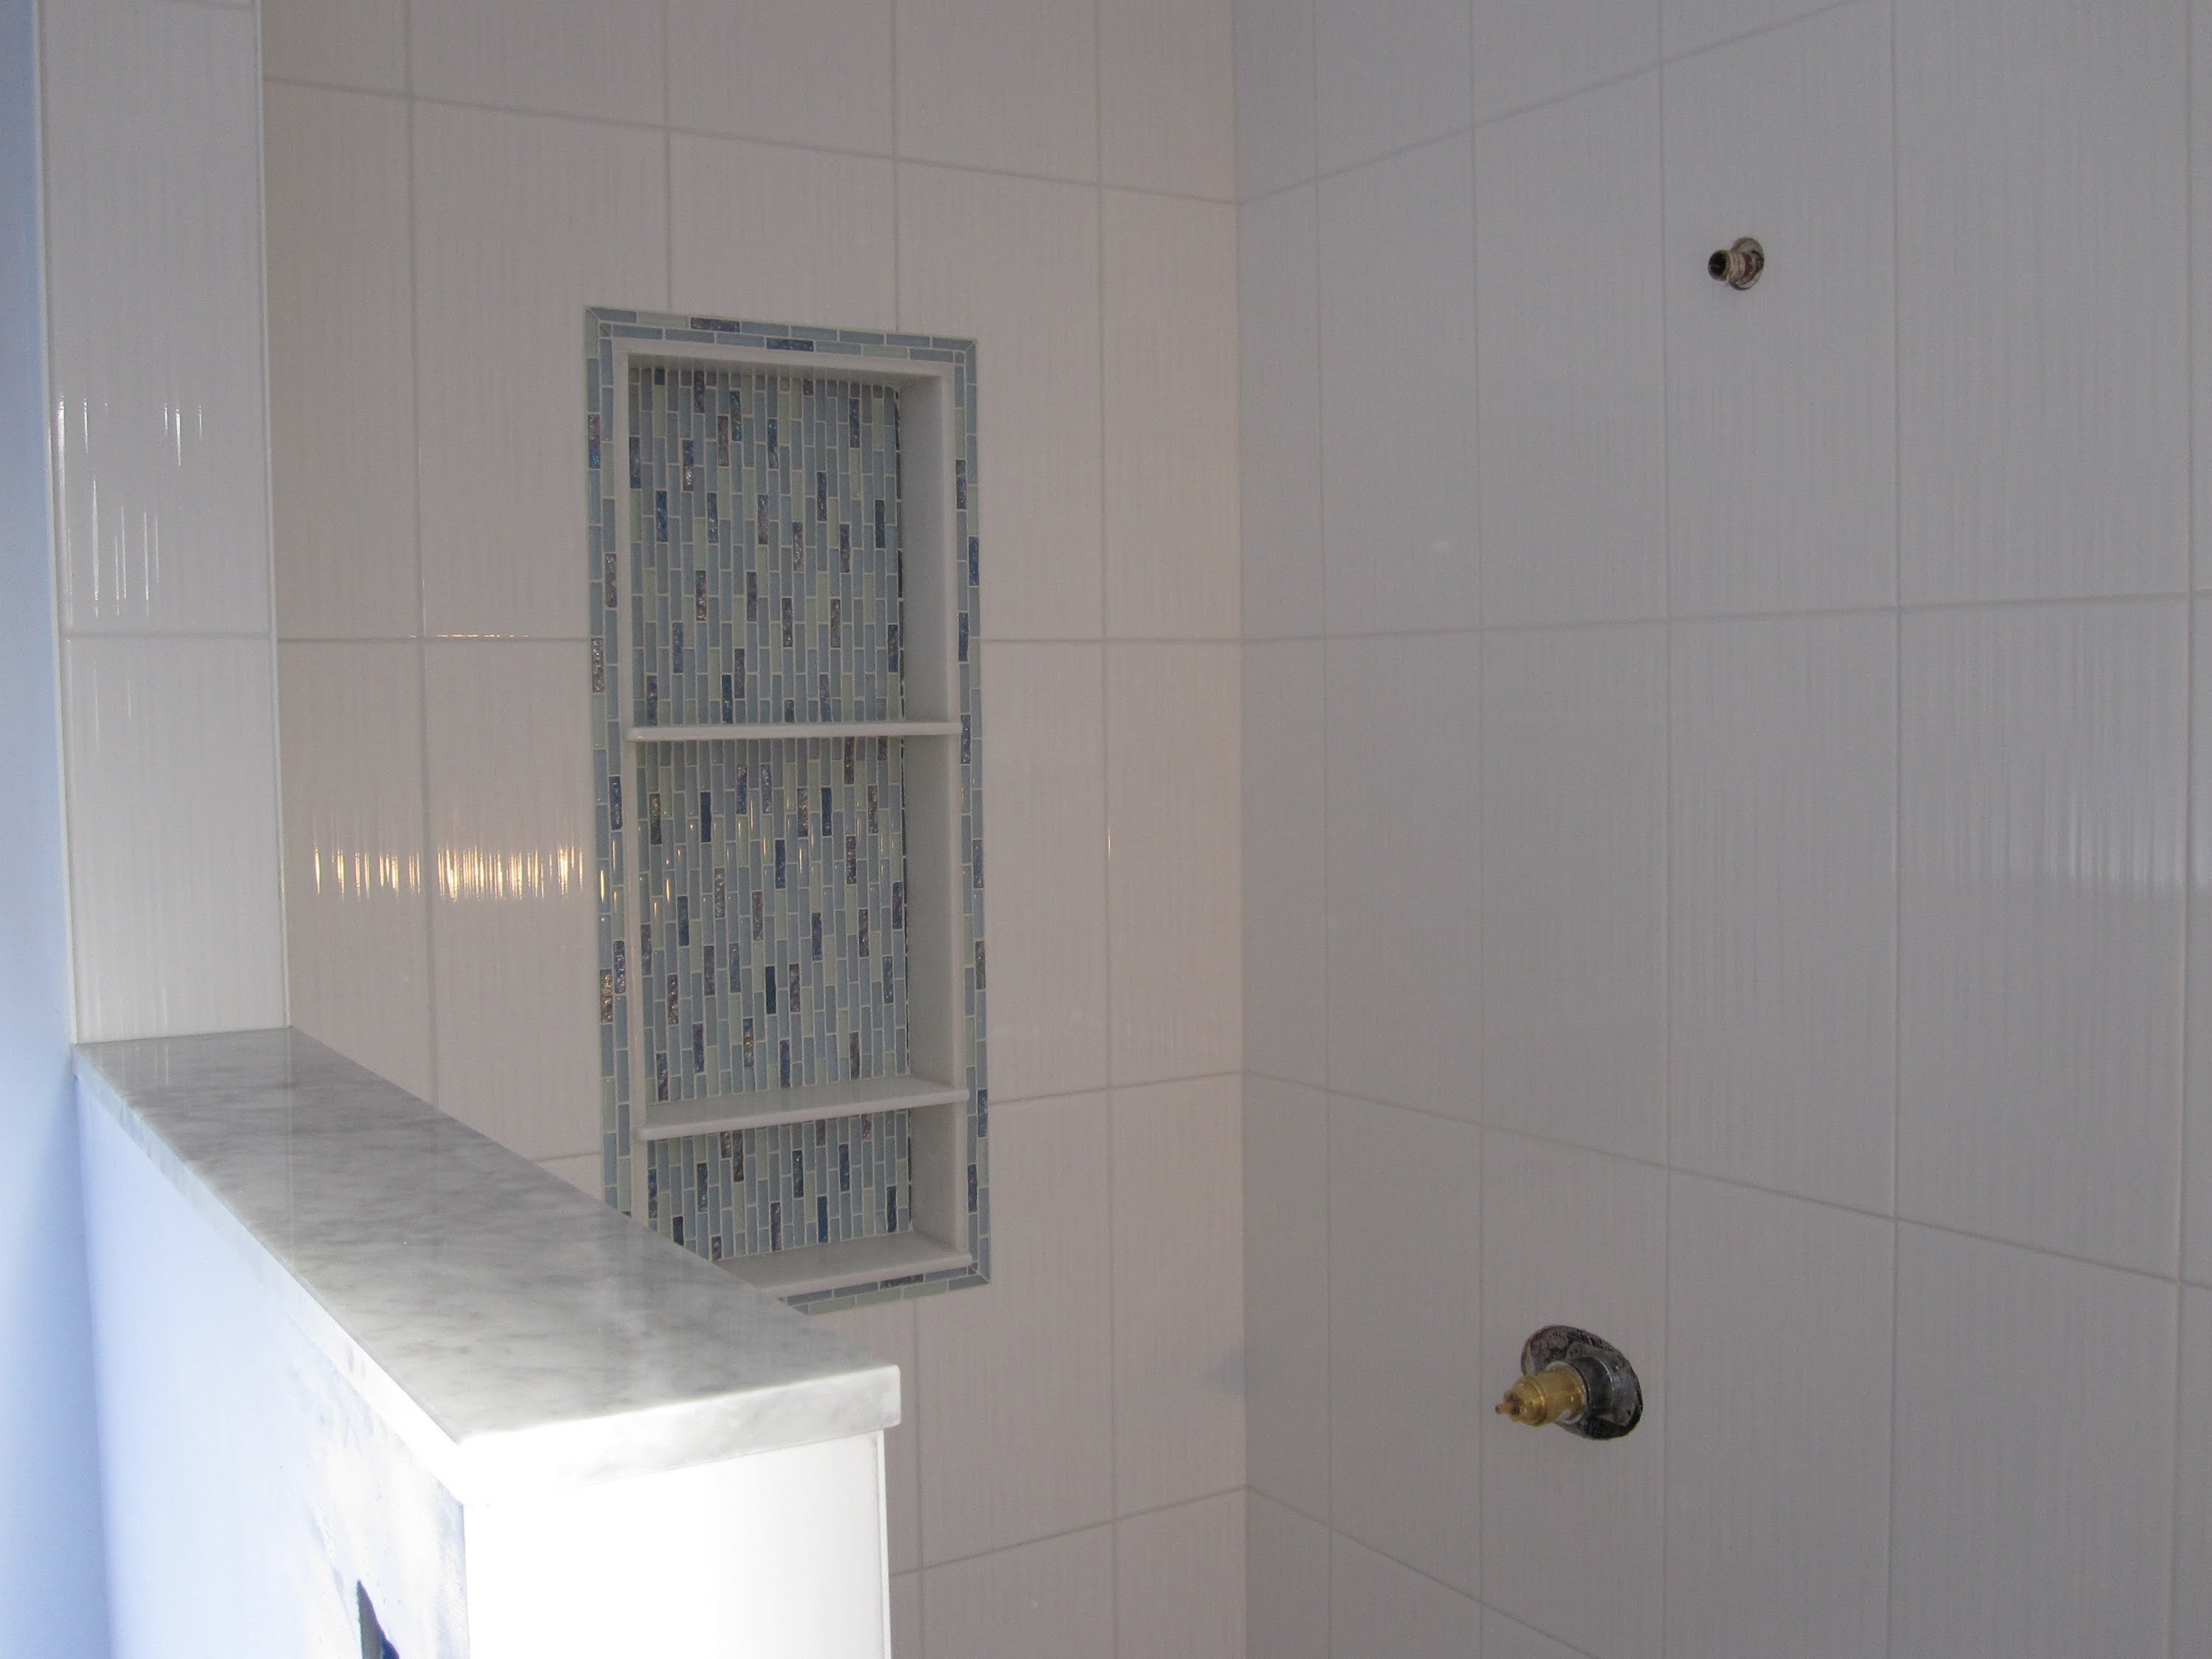 Ceramic Tile Shower Stall with schluter strip for bathroom decor ideas